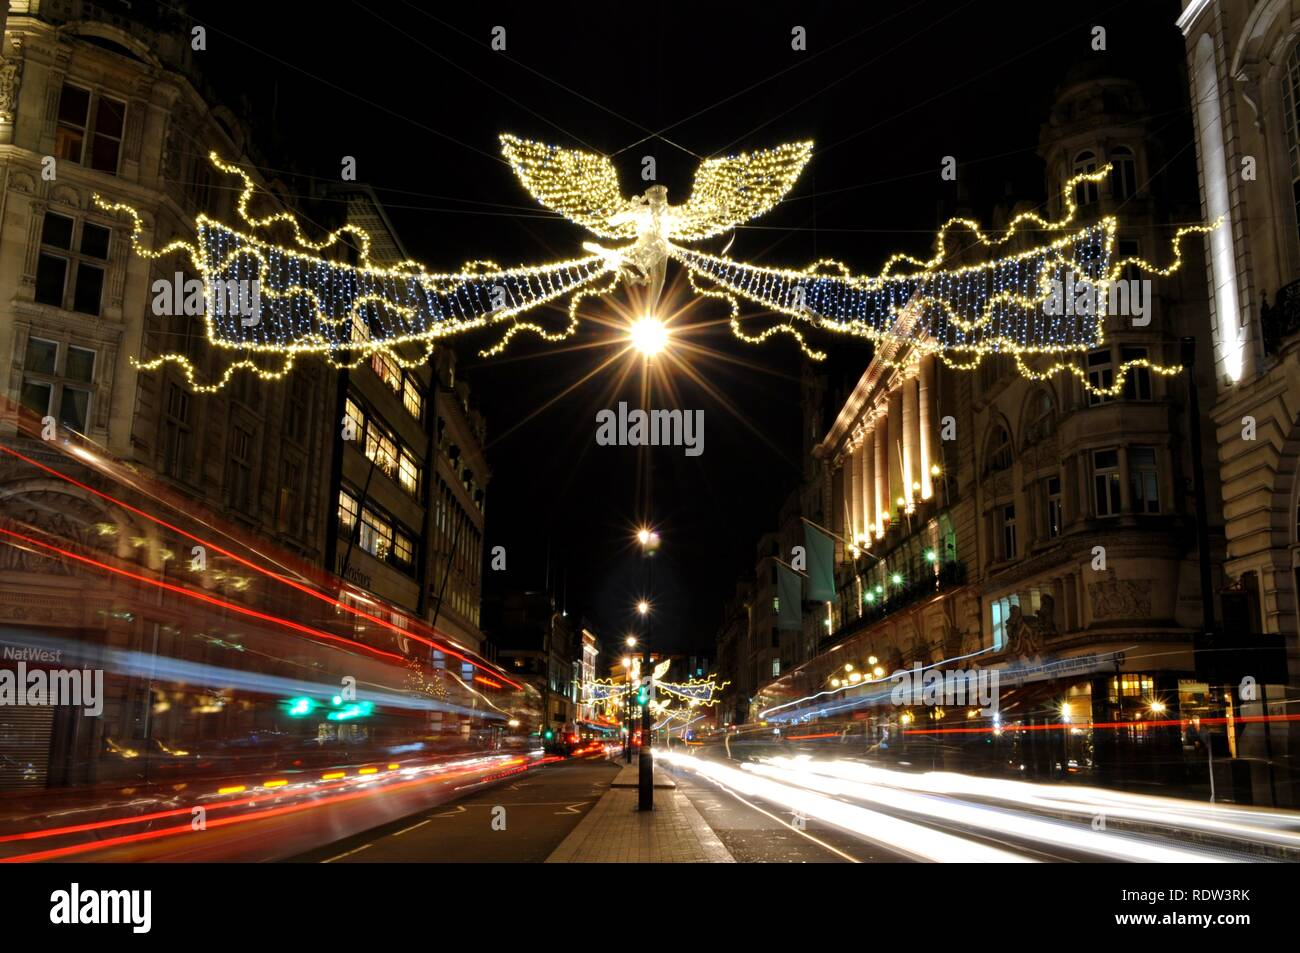 2017 Christmas light display over Piccadilly, created by James Glancy Design Ltd, London, UK. - Stock Image